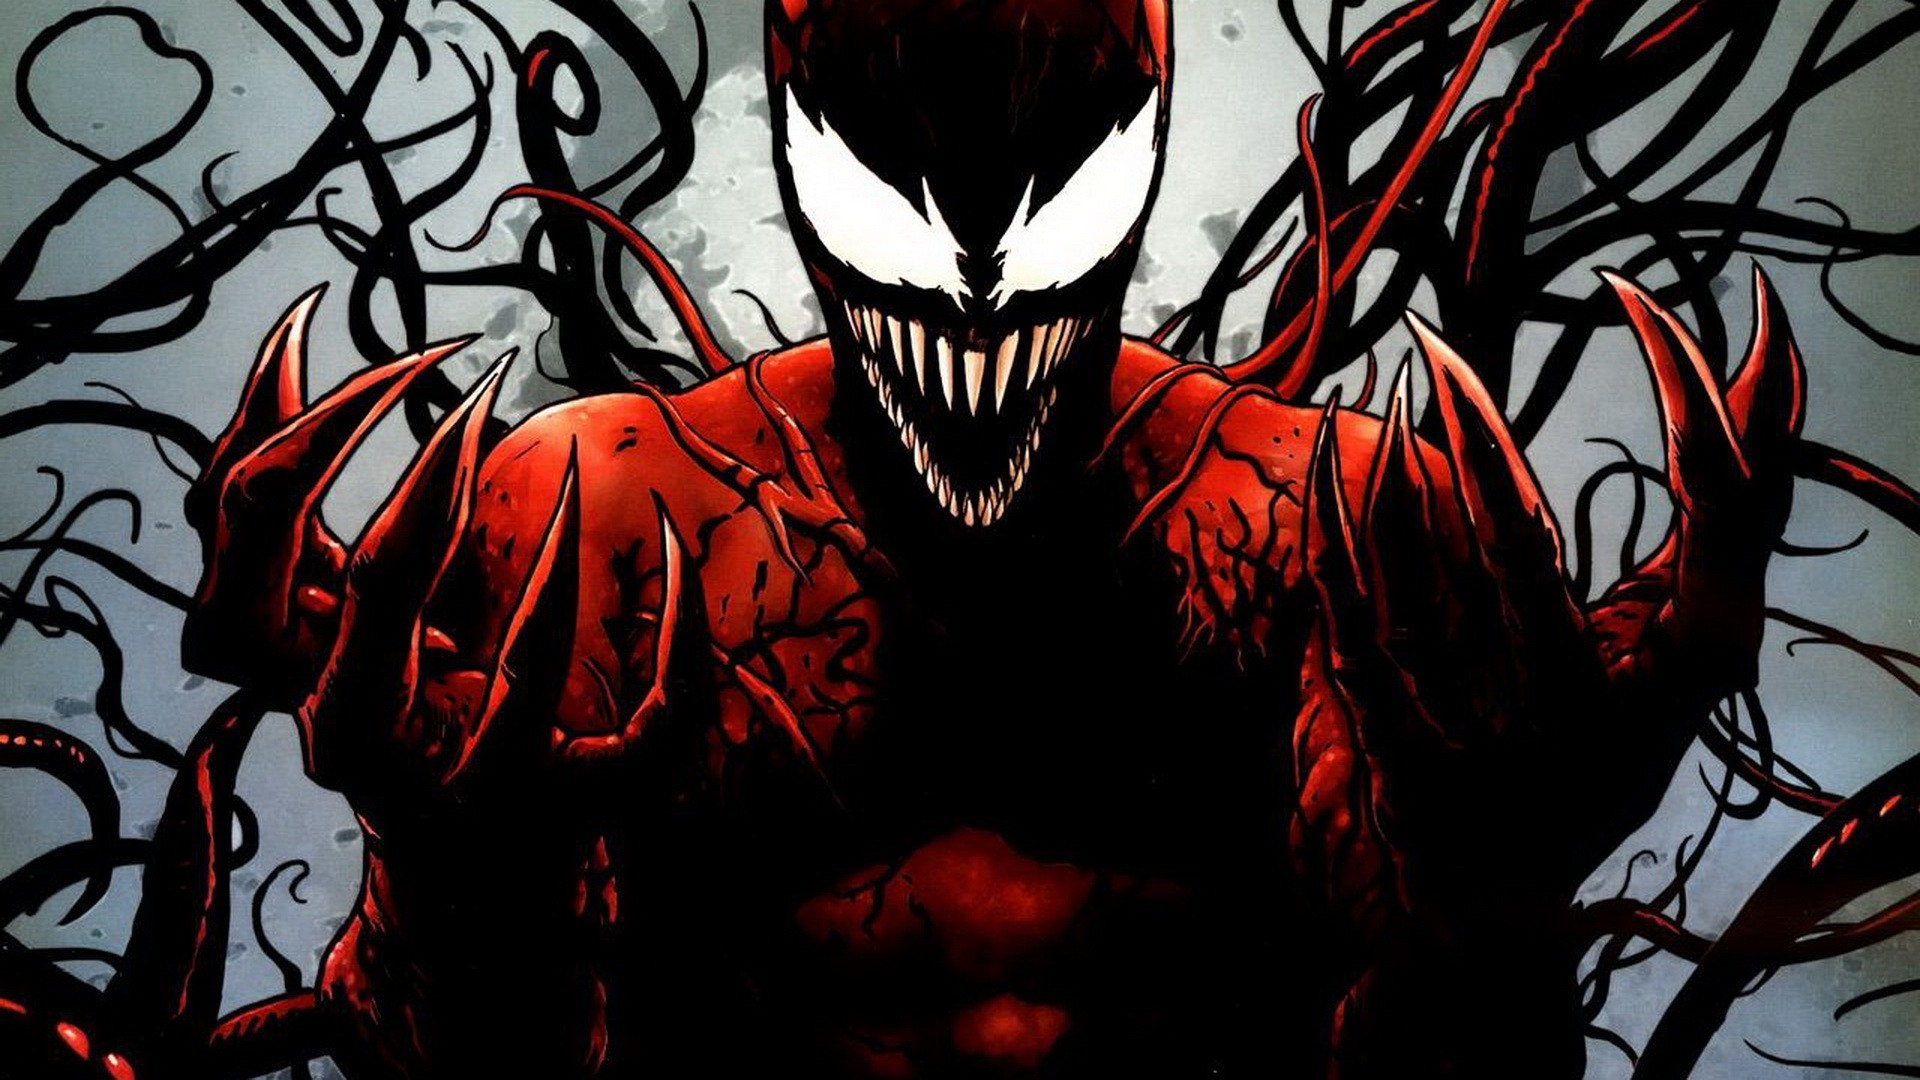 1920x1080 Carnage Wallpapers wallpaper, wallpaper hd, background desktop